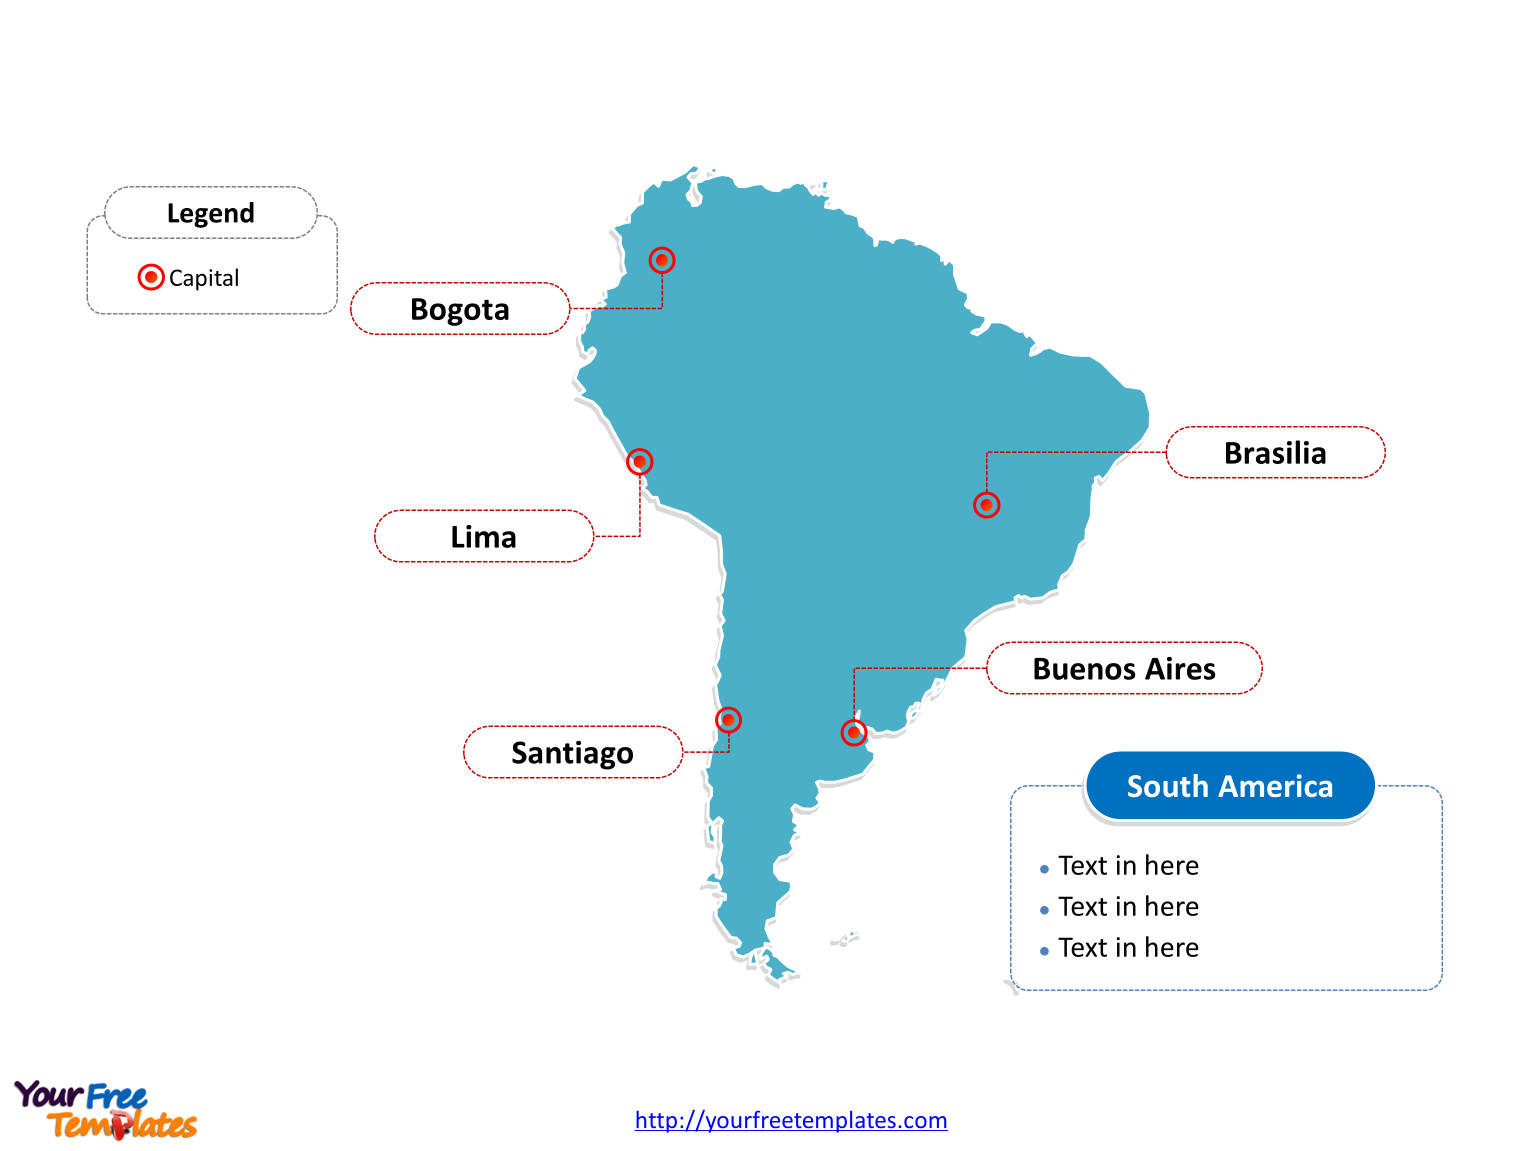 Free south america editable map free powerpoint templates south america outline map labeled with major capitals toneelgroepblik Images